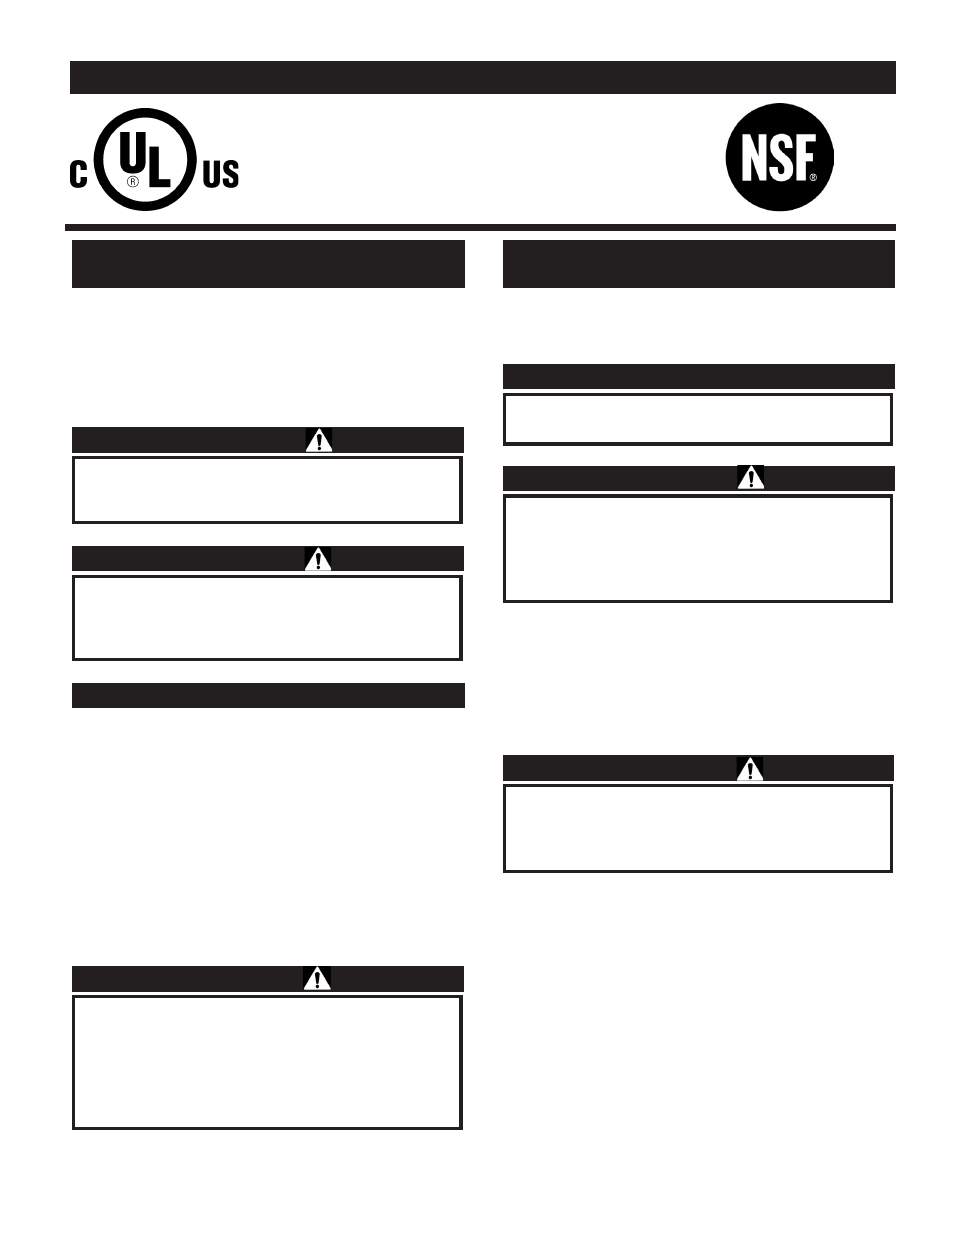 Lochinvar Nsf Ssb I S 01 User Manual 12 Pages Fuse Box Chart What Goes Where Page 3